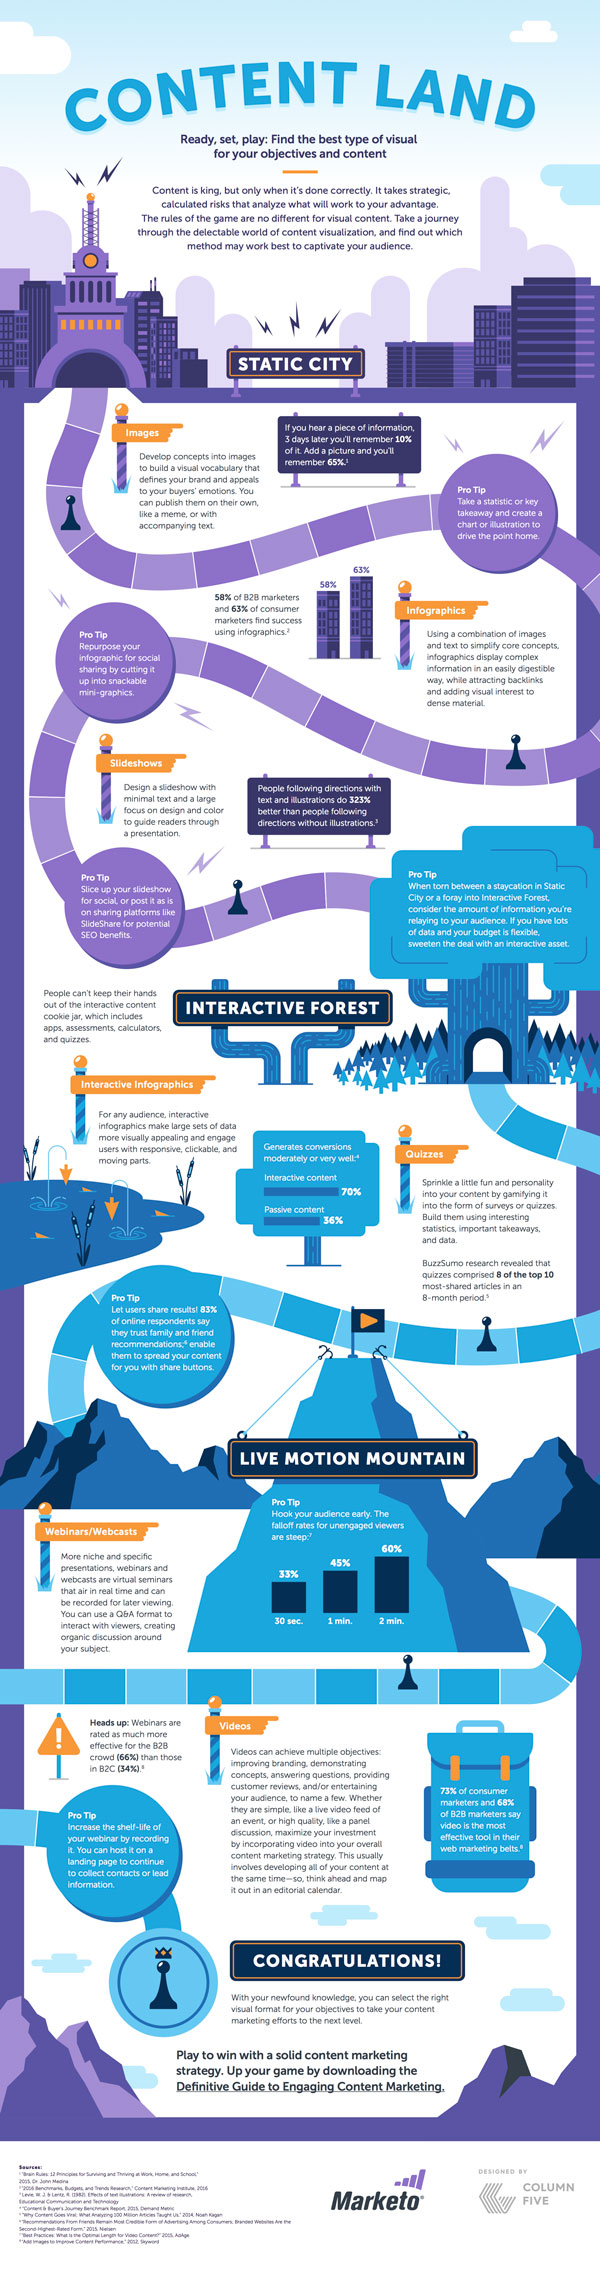 Content-Land-infographic